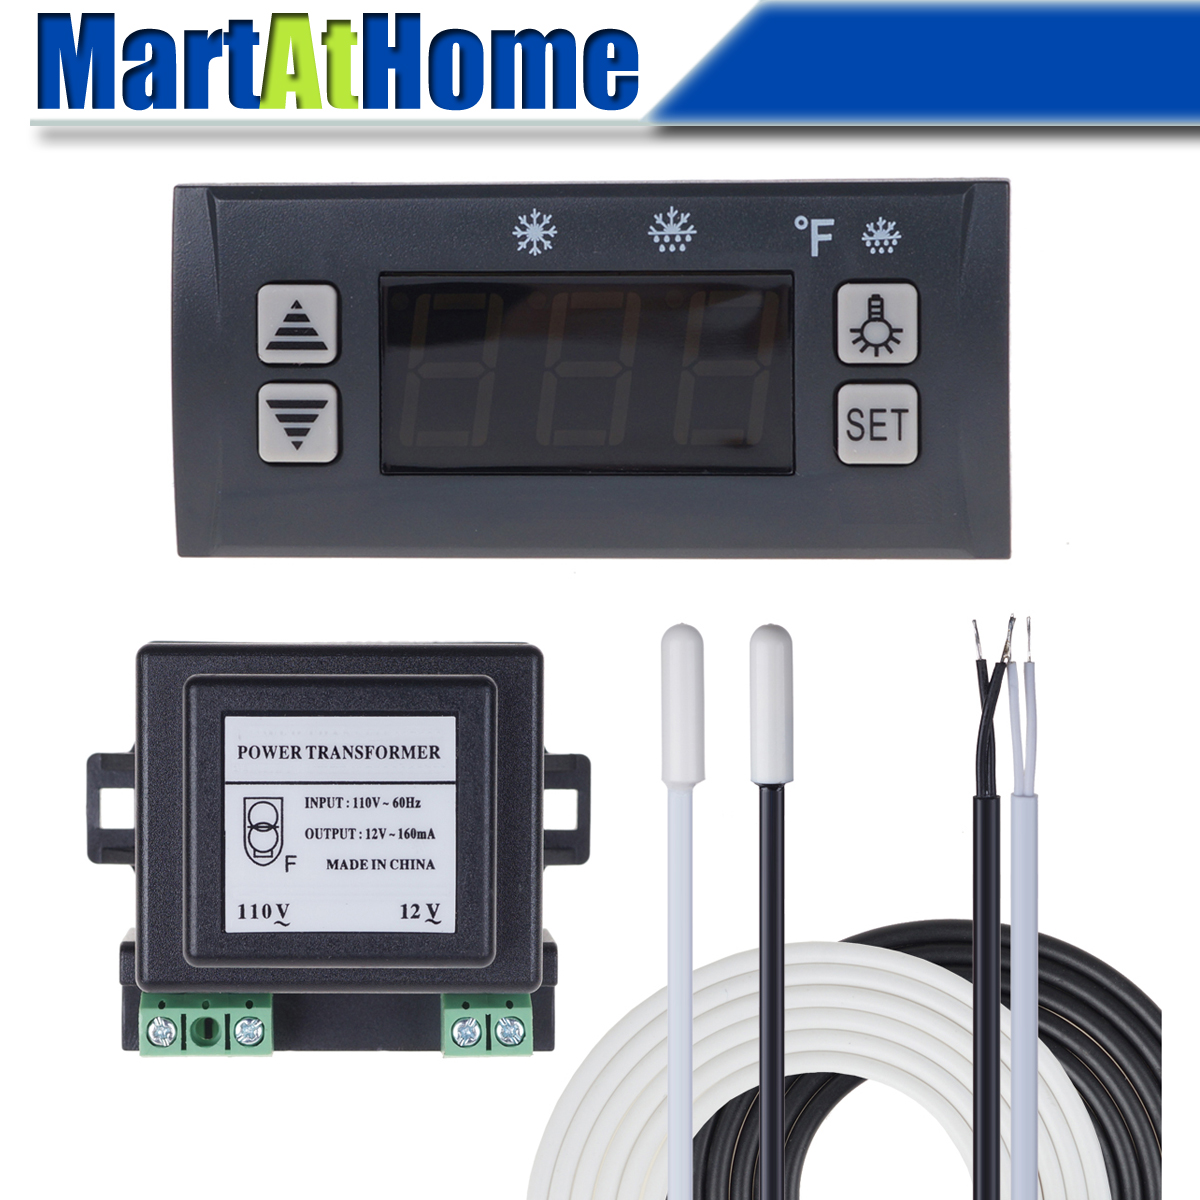 Digital Temperature Controller Electronic Thermostat -40 To 120°F -45 To 45℃ Switchable Defrost Two NTC Sensor Probes For Refri